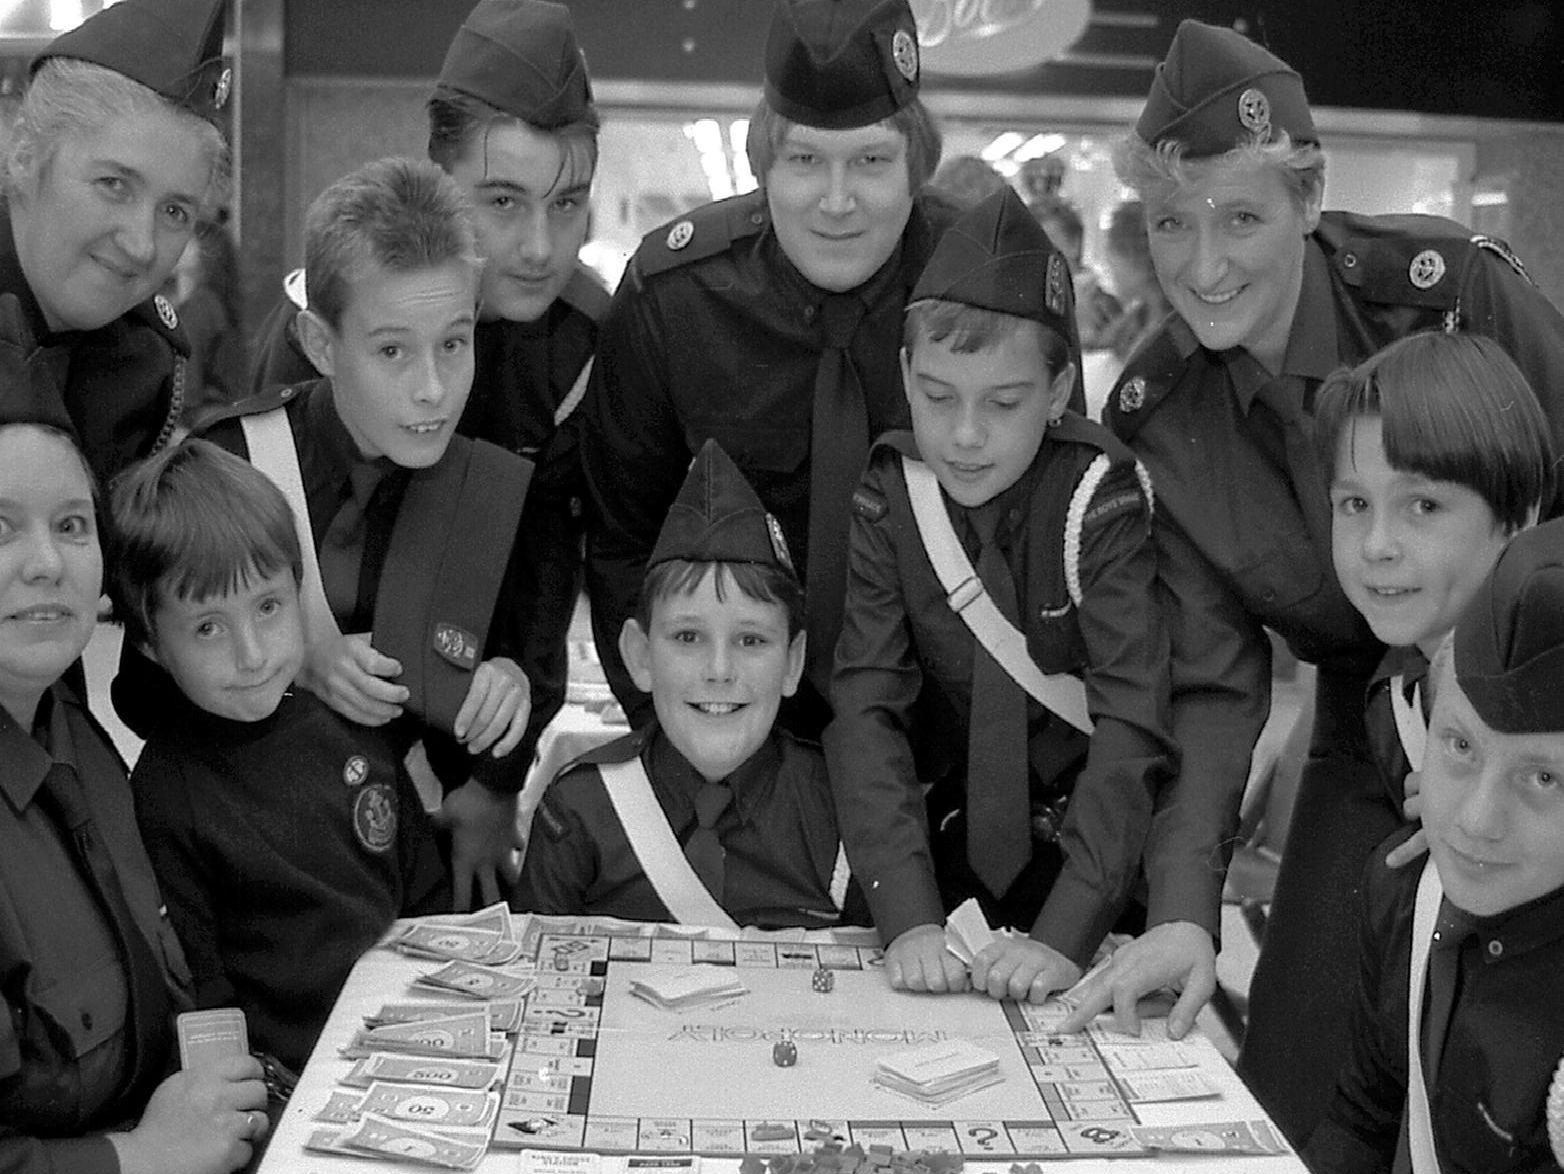 1989: A smiley group shot of Mansfield Boys Brigade during their Monopoly marathon. Did you take part in this?